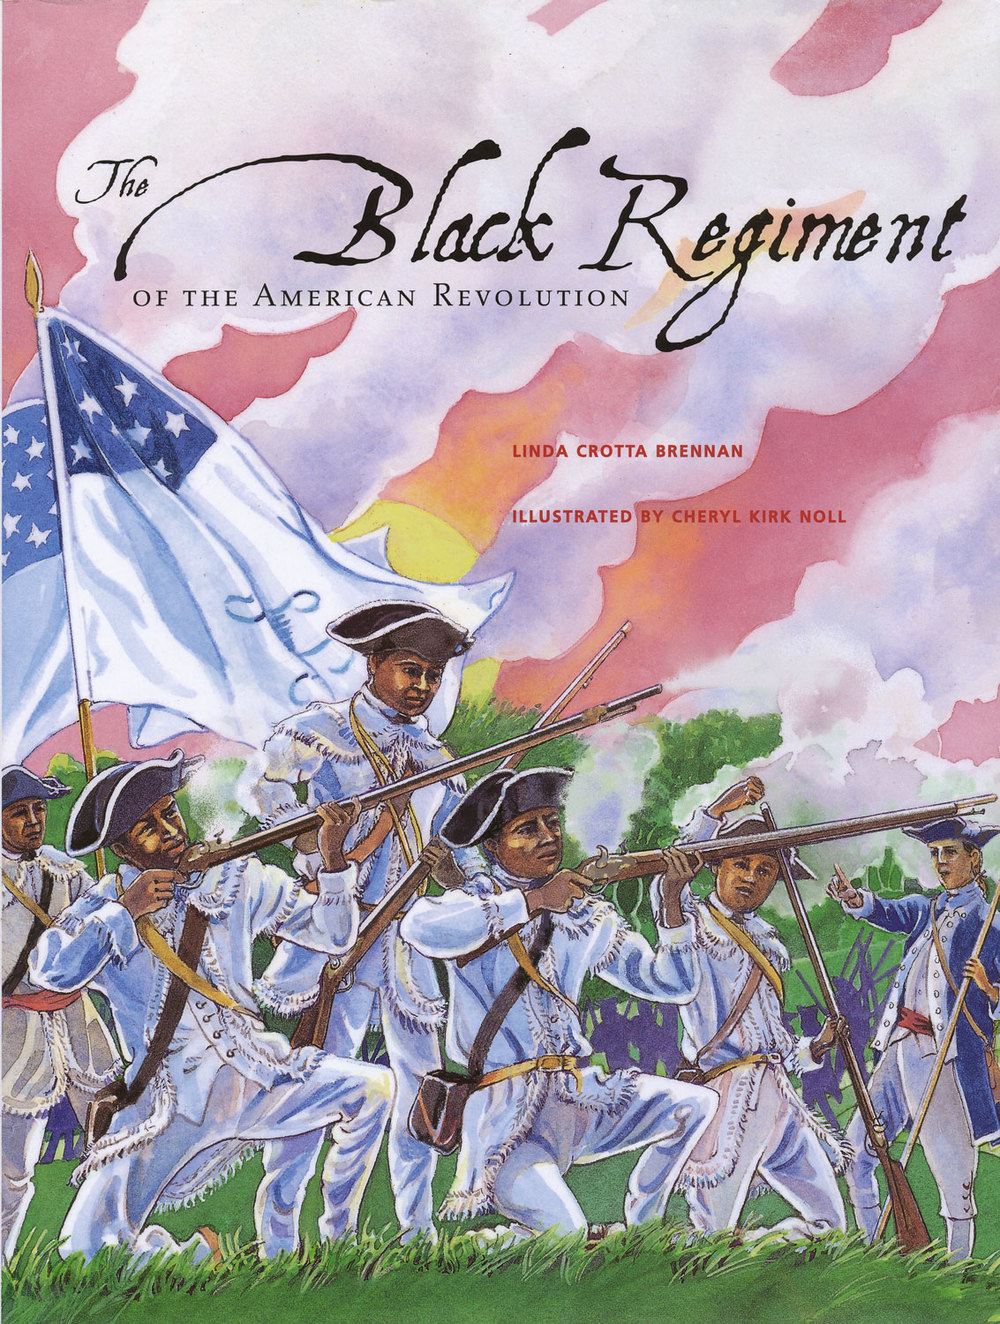 The Black Regiment of the American Revolution, by Linda Crotta Brennan, AppreniceShop Books, Ltd.